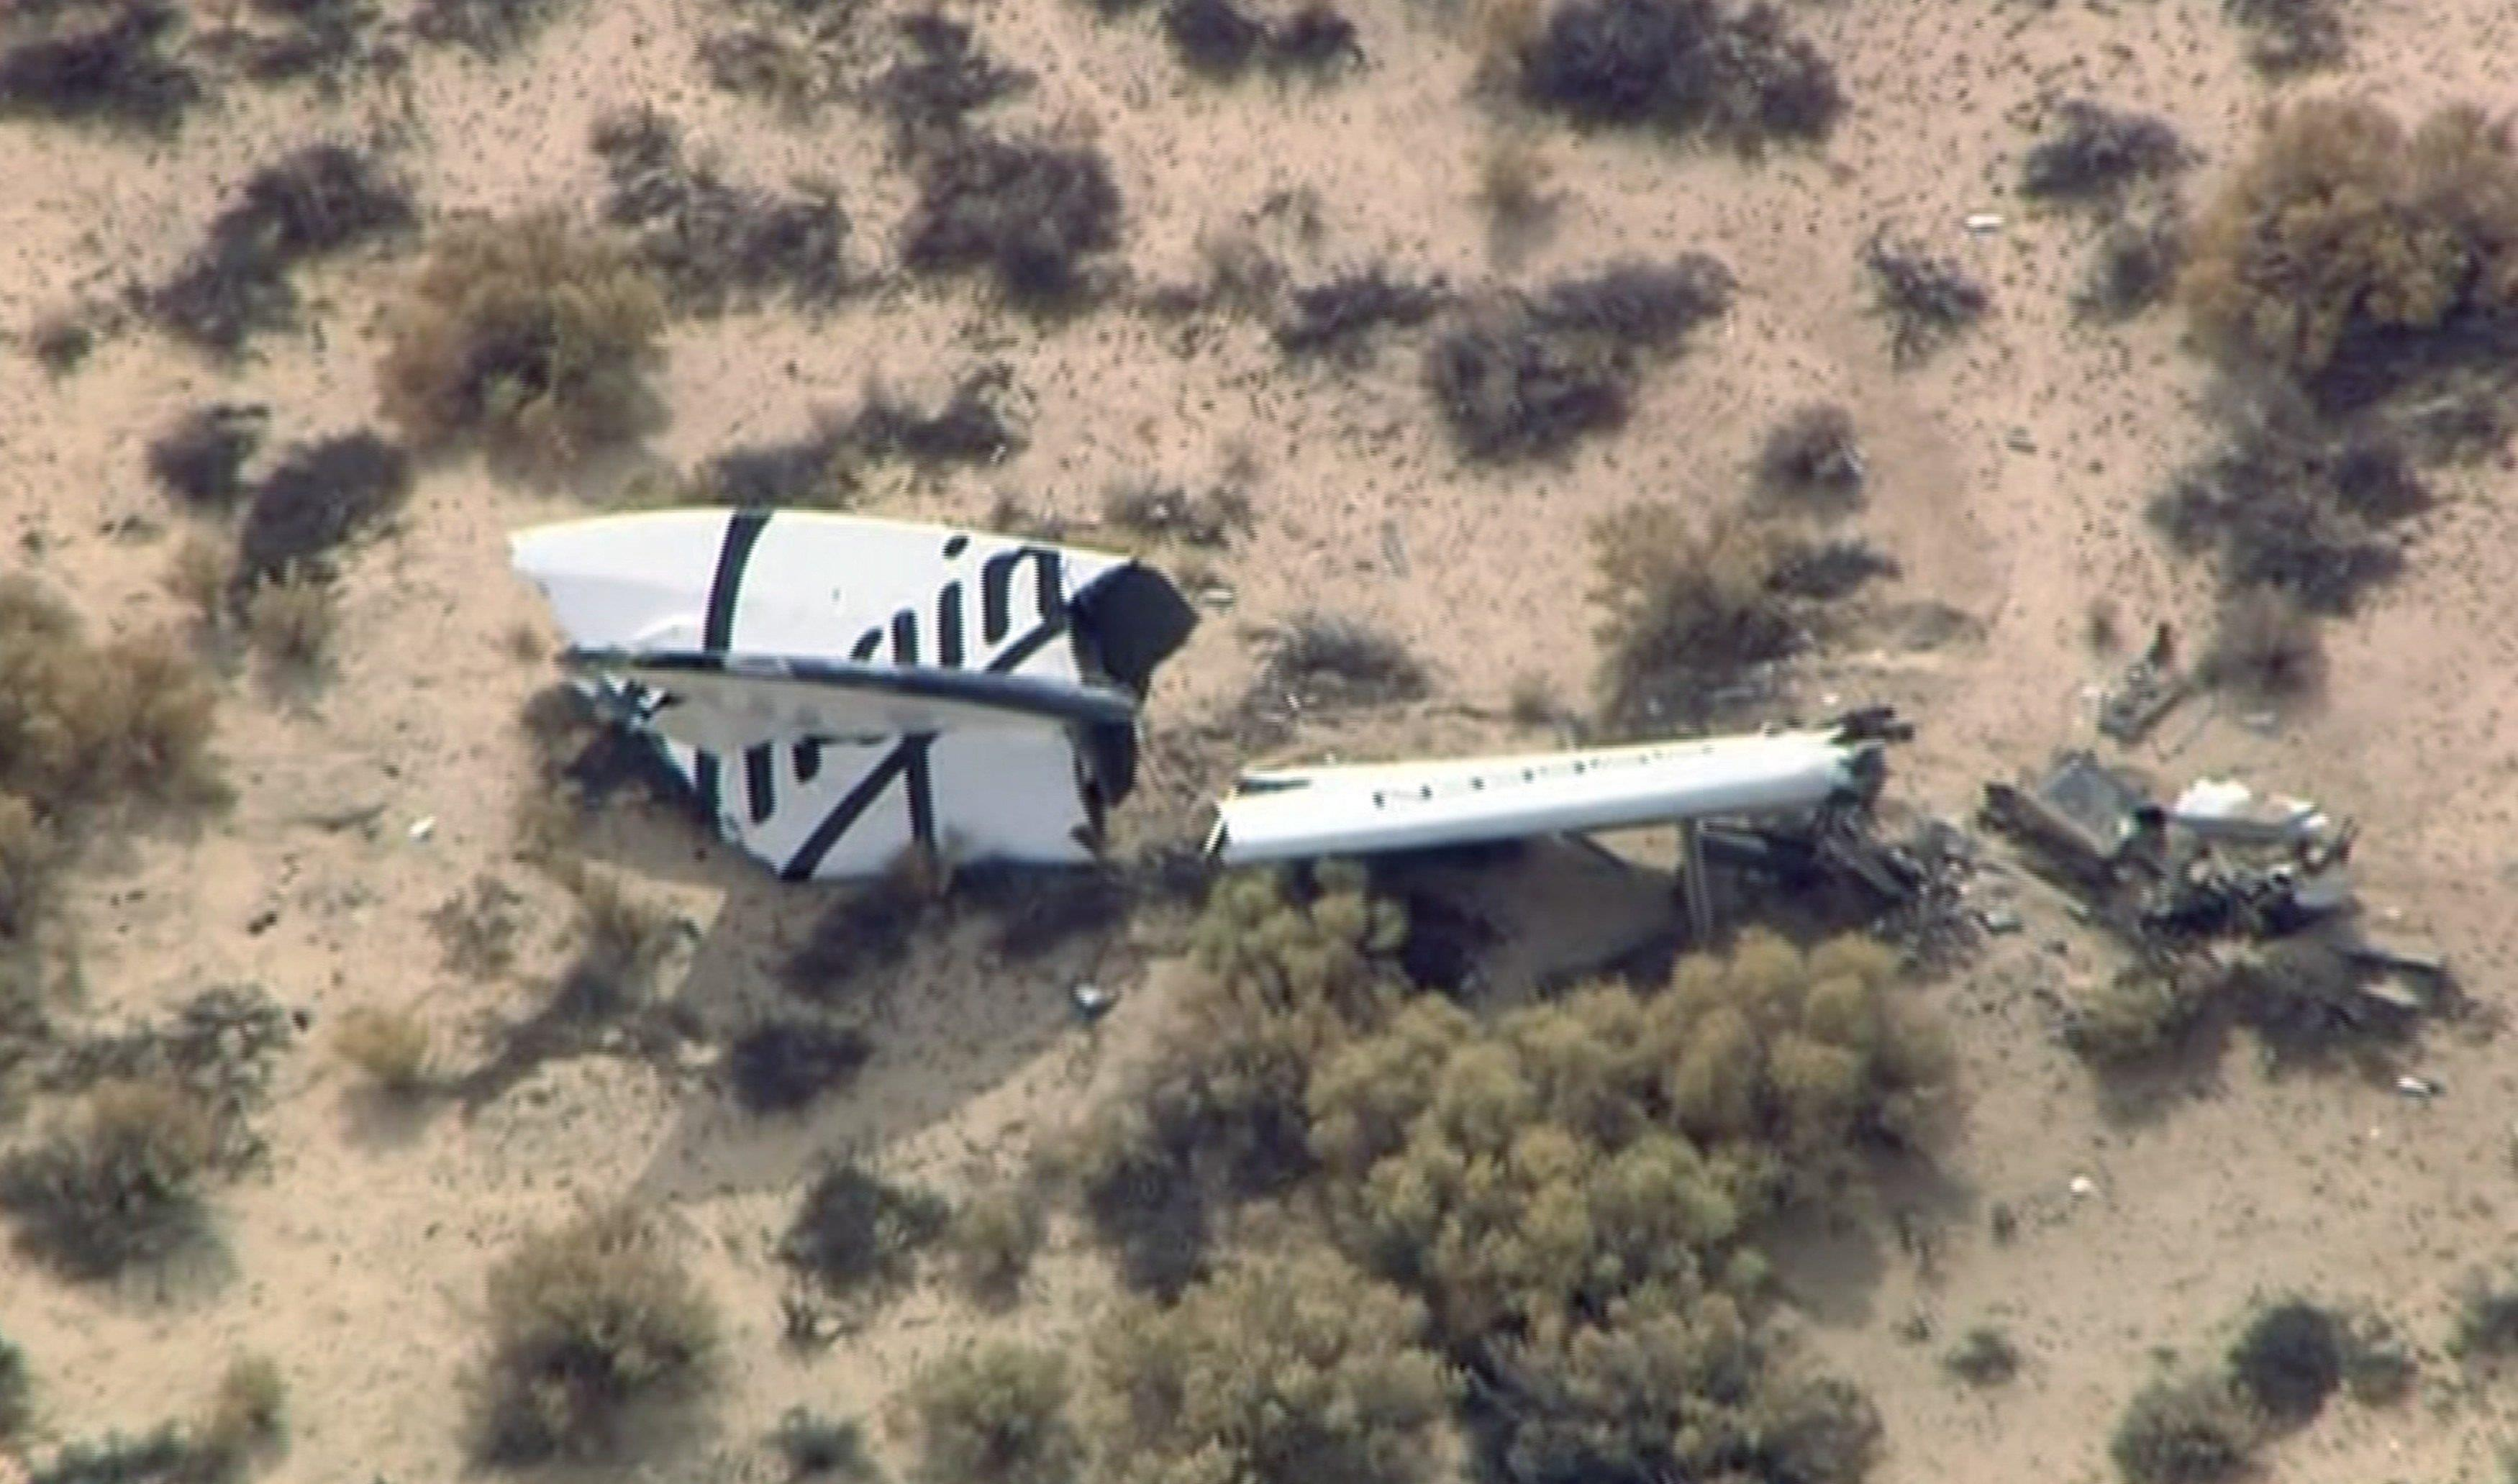 Virgin Galactic's SpaceShipTwo Crashes: 1 Dead, 1 Injured ...